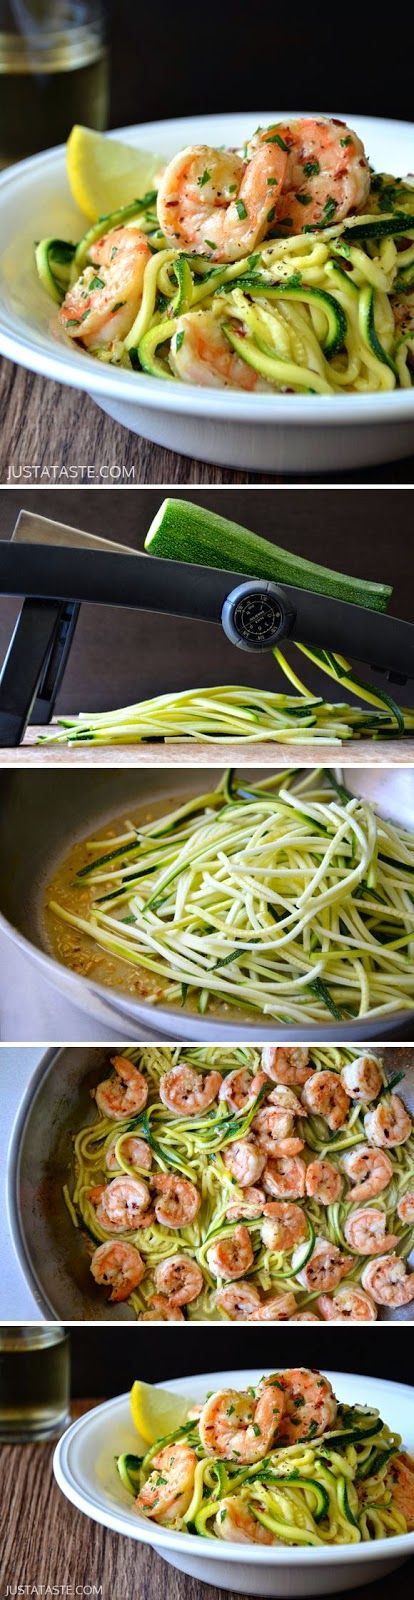 Love #ShrimpScampi but hate all the calories? Opt for zucchini noodles instead of pasta to lighten it up!